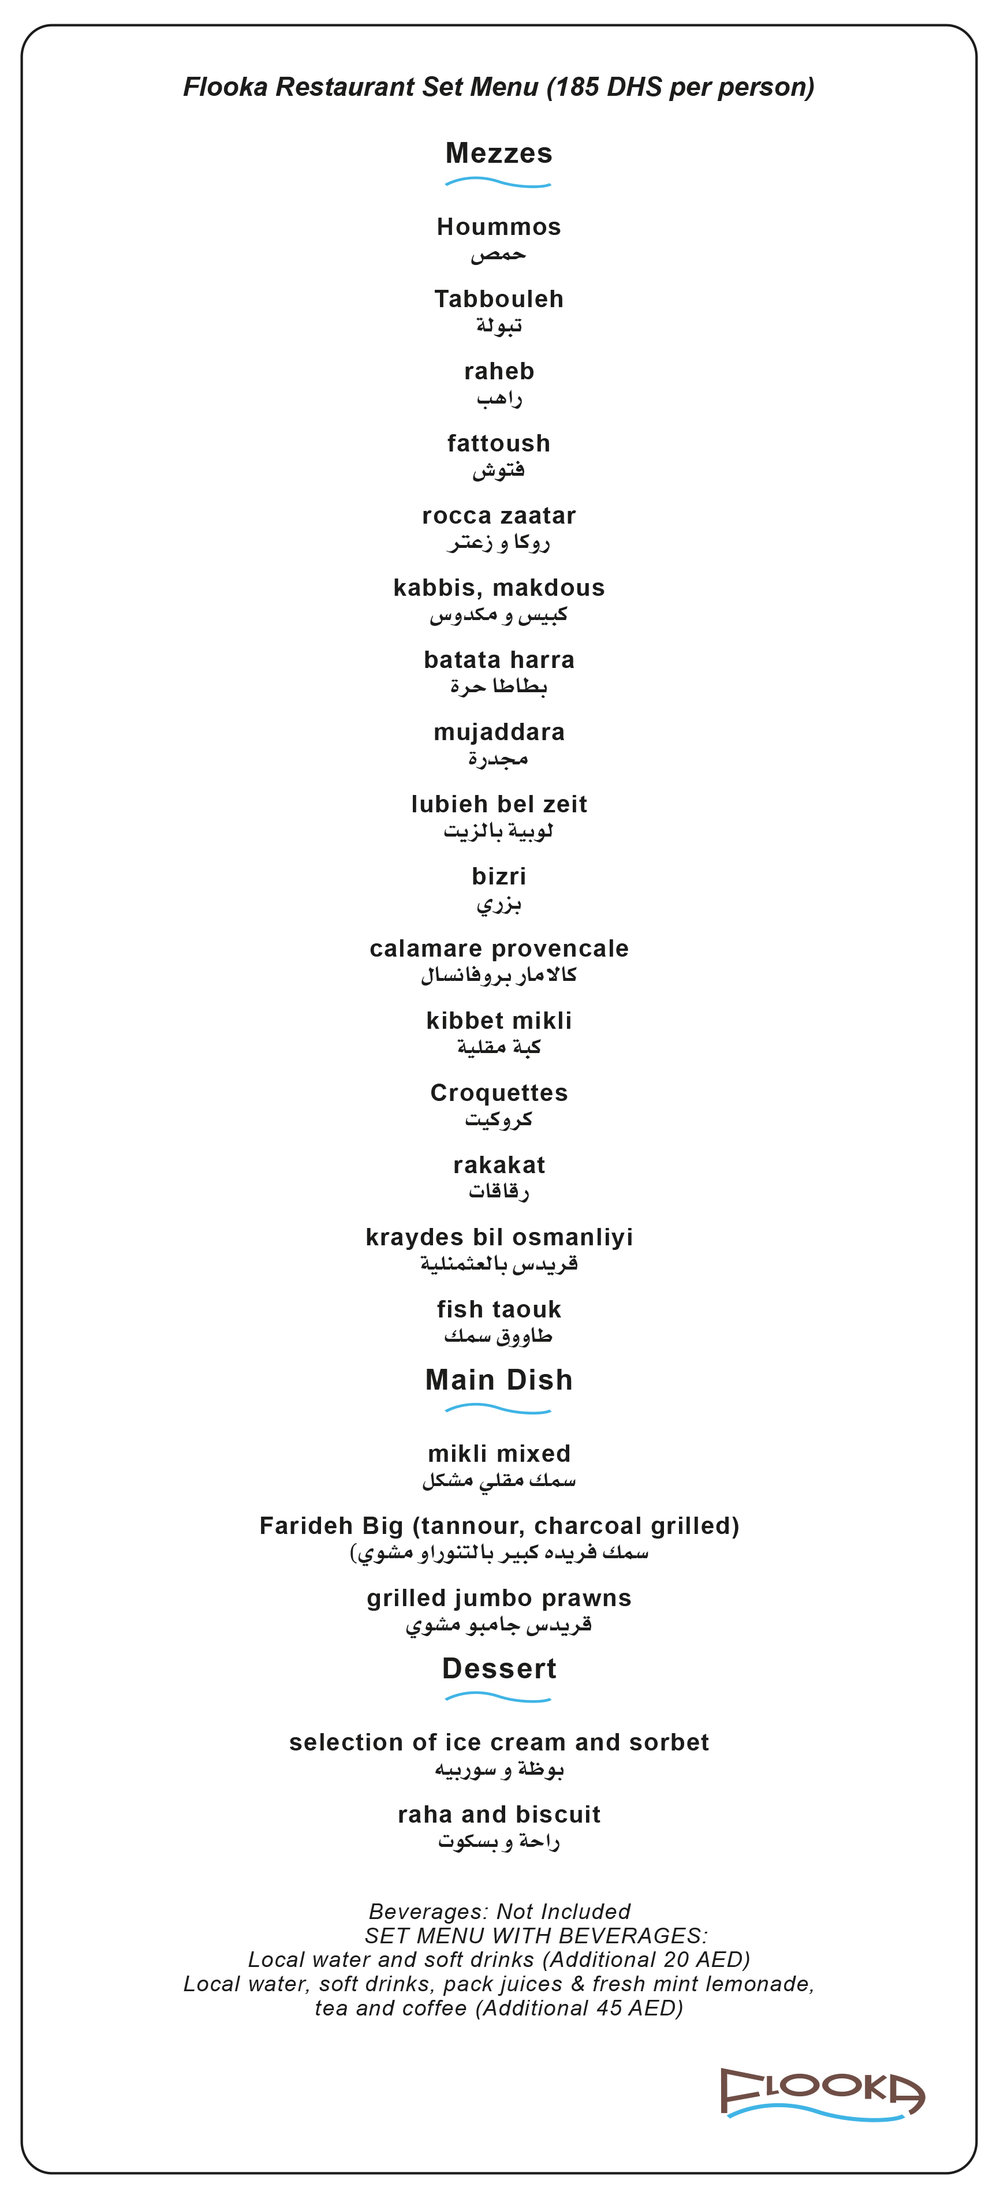 Flooka Set Menu 185 Aed(1)-1.jpg